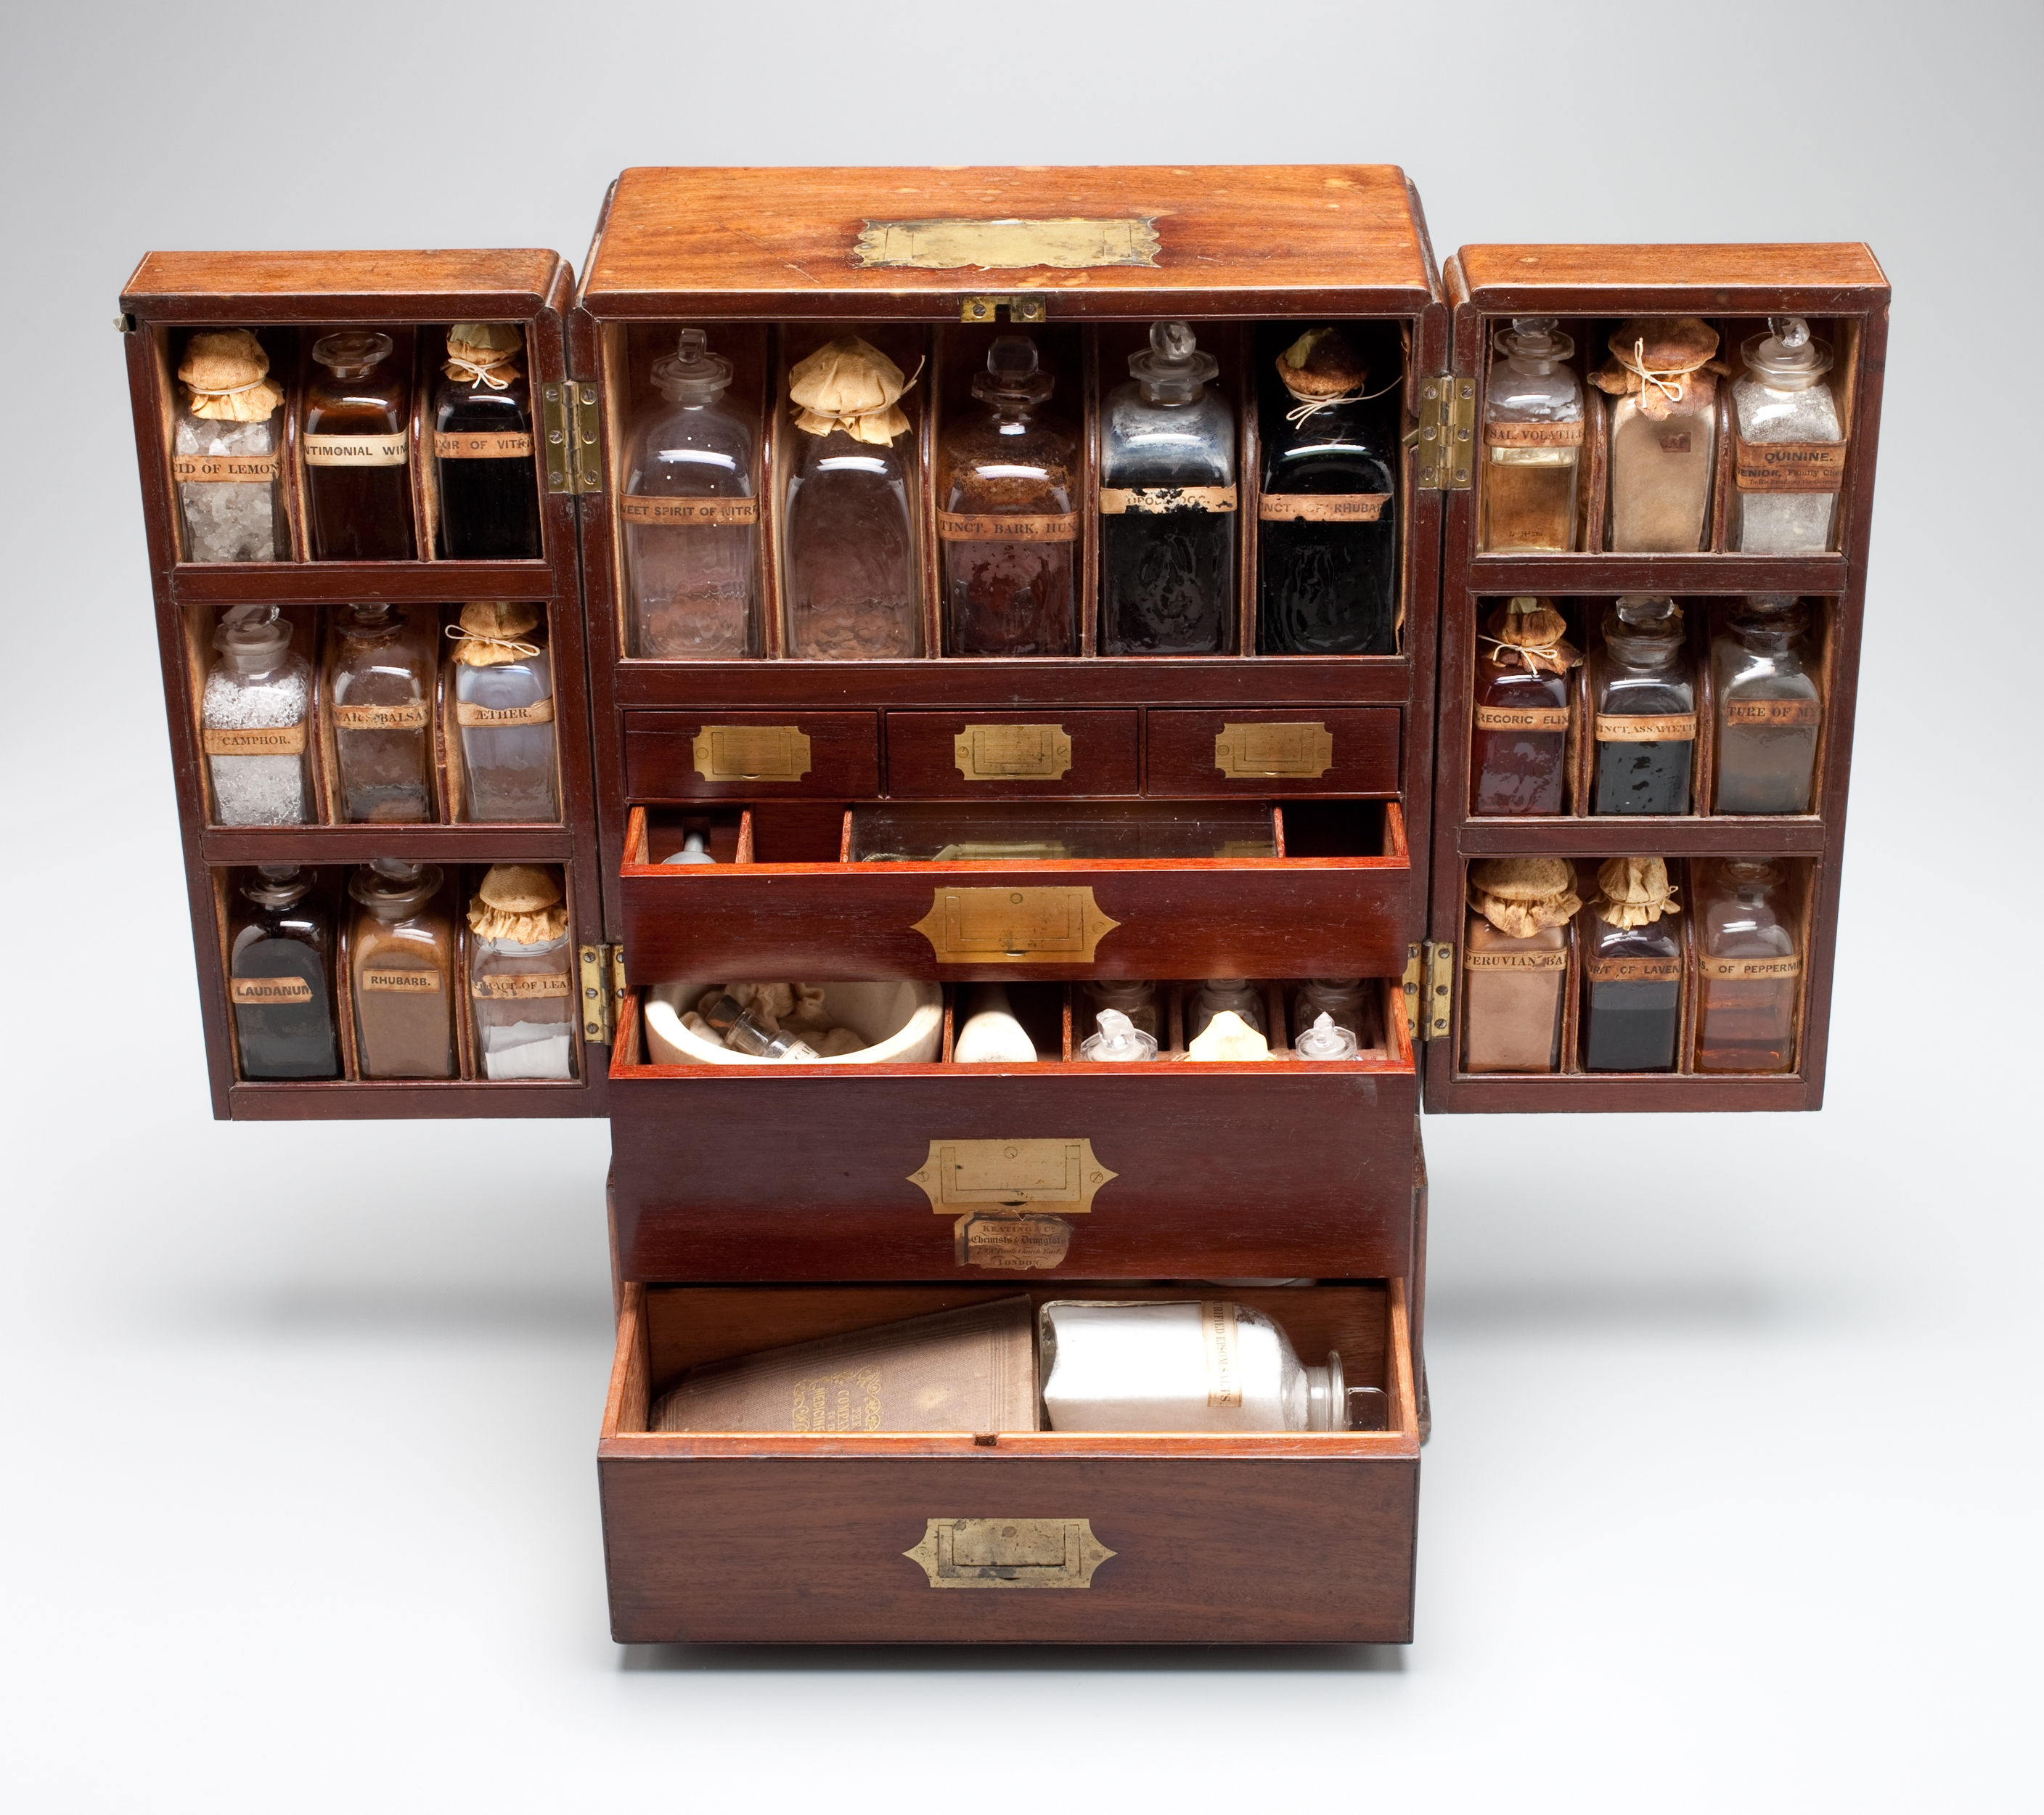 & Unveiling a medicine chest u2013 Inside the Collection